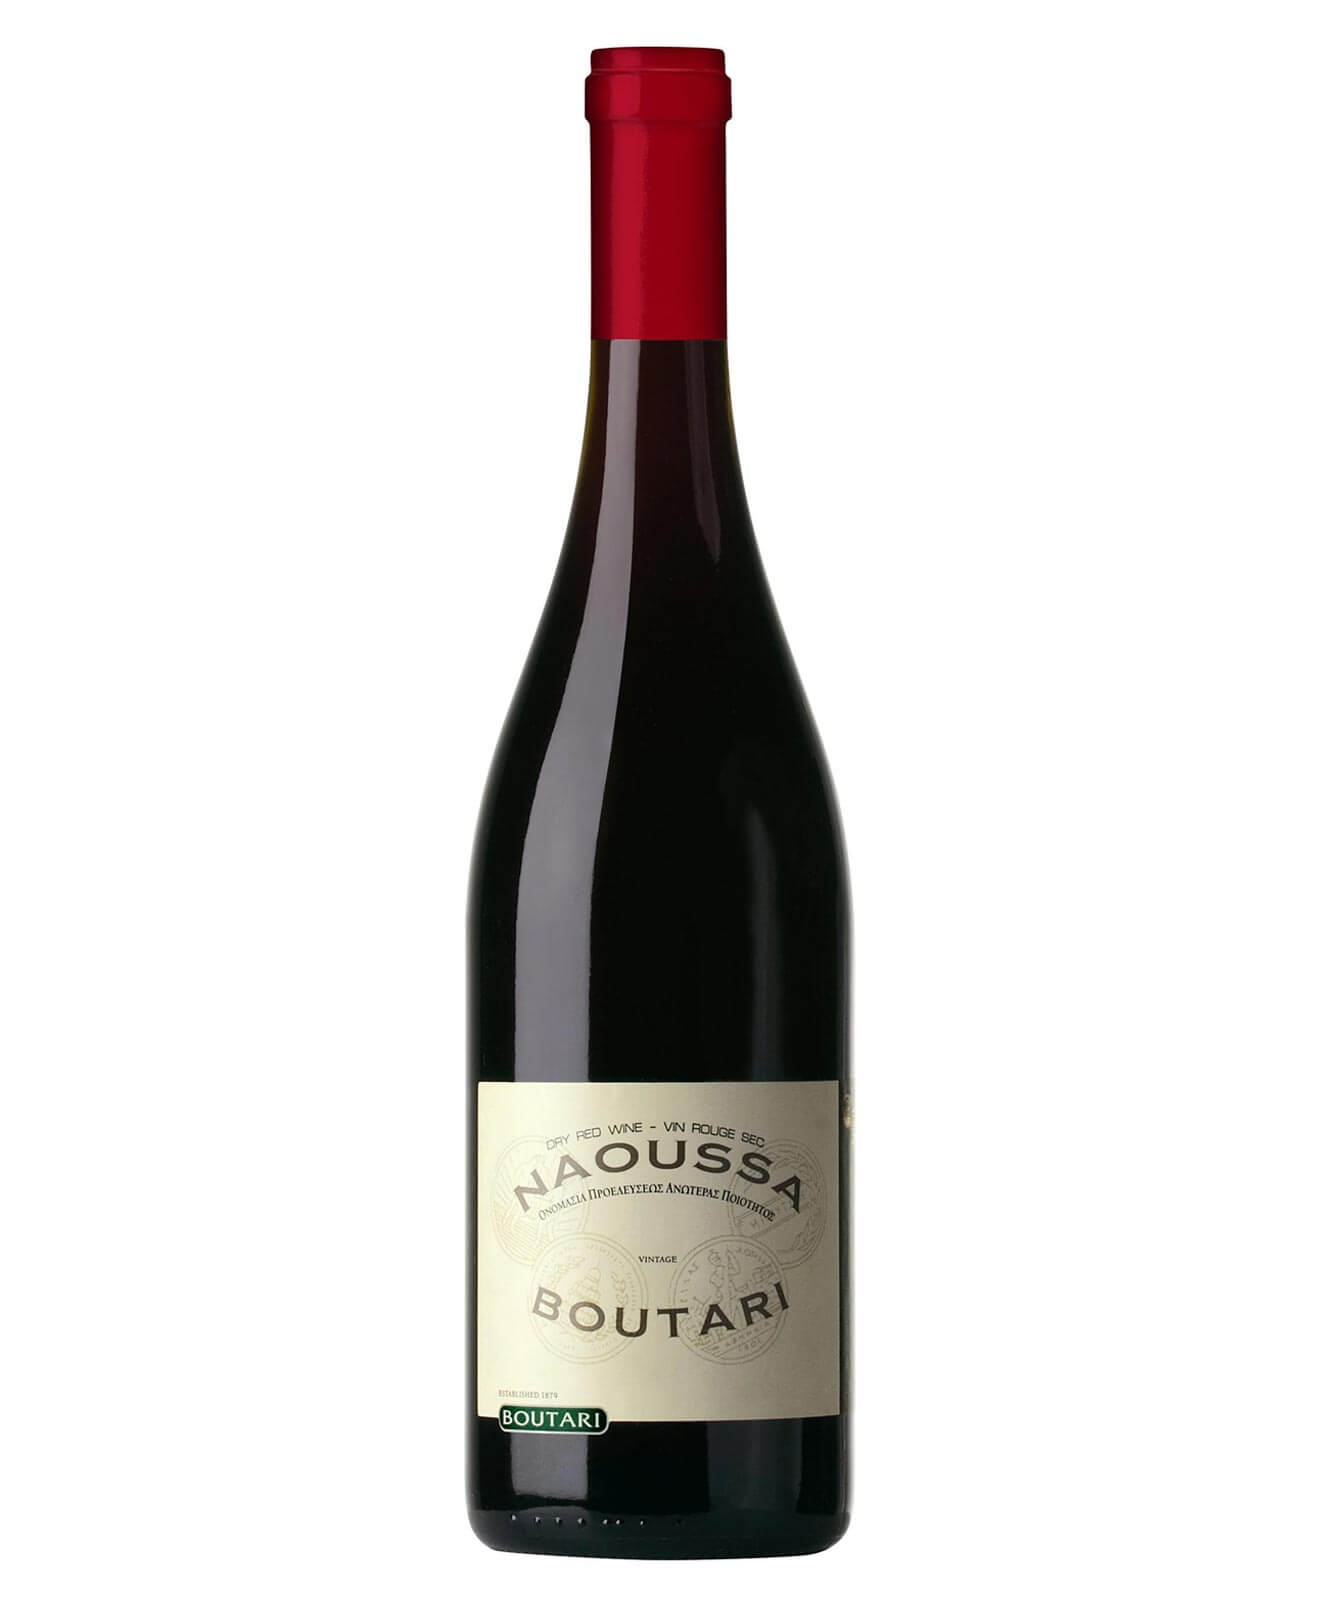 2016 Boutari Naoussa, bottle on white